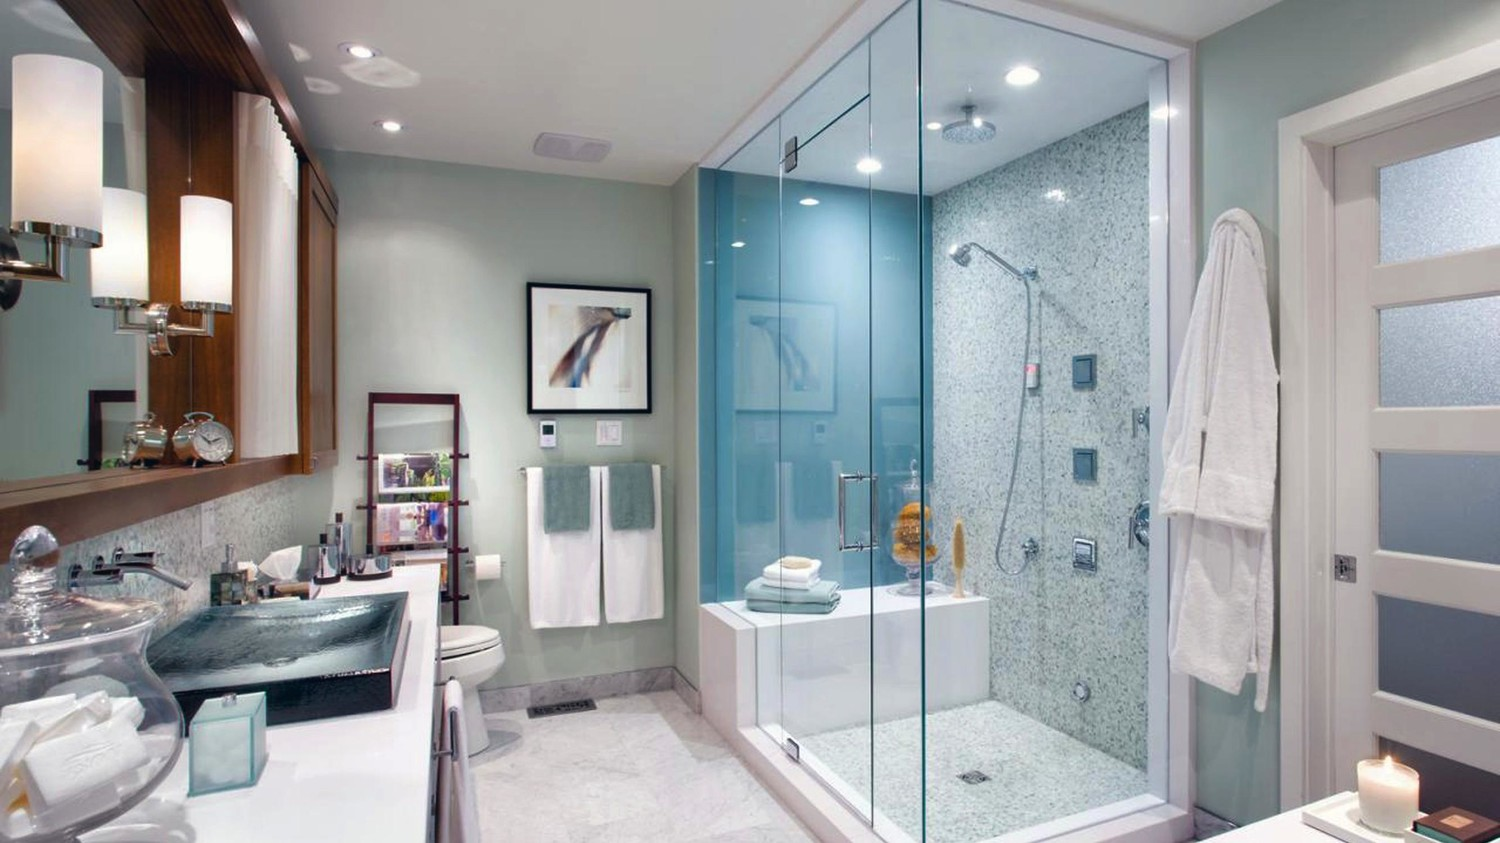 bathroom updates for every style - Bathroom Designs Pictures